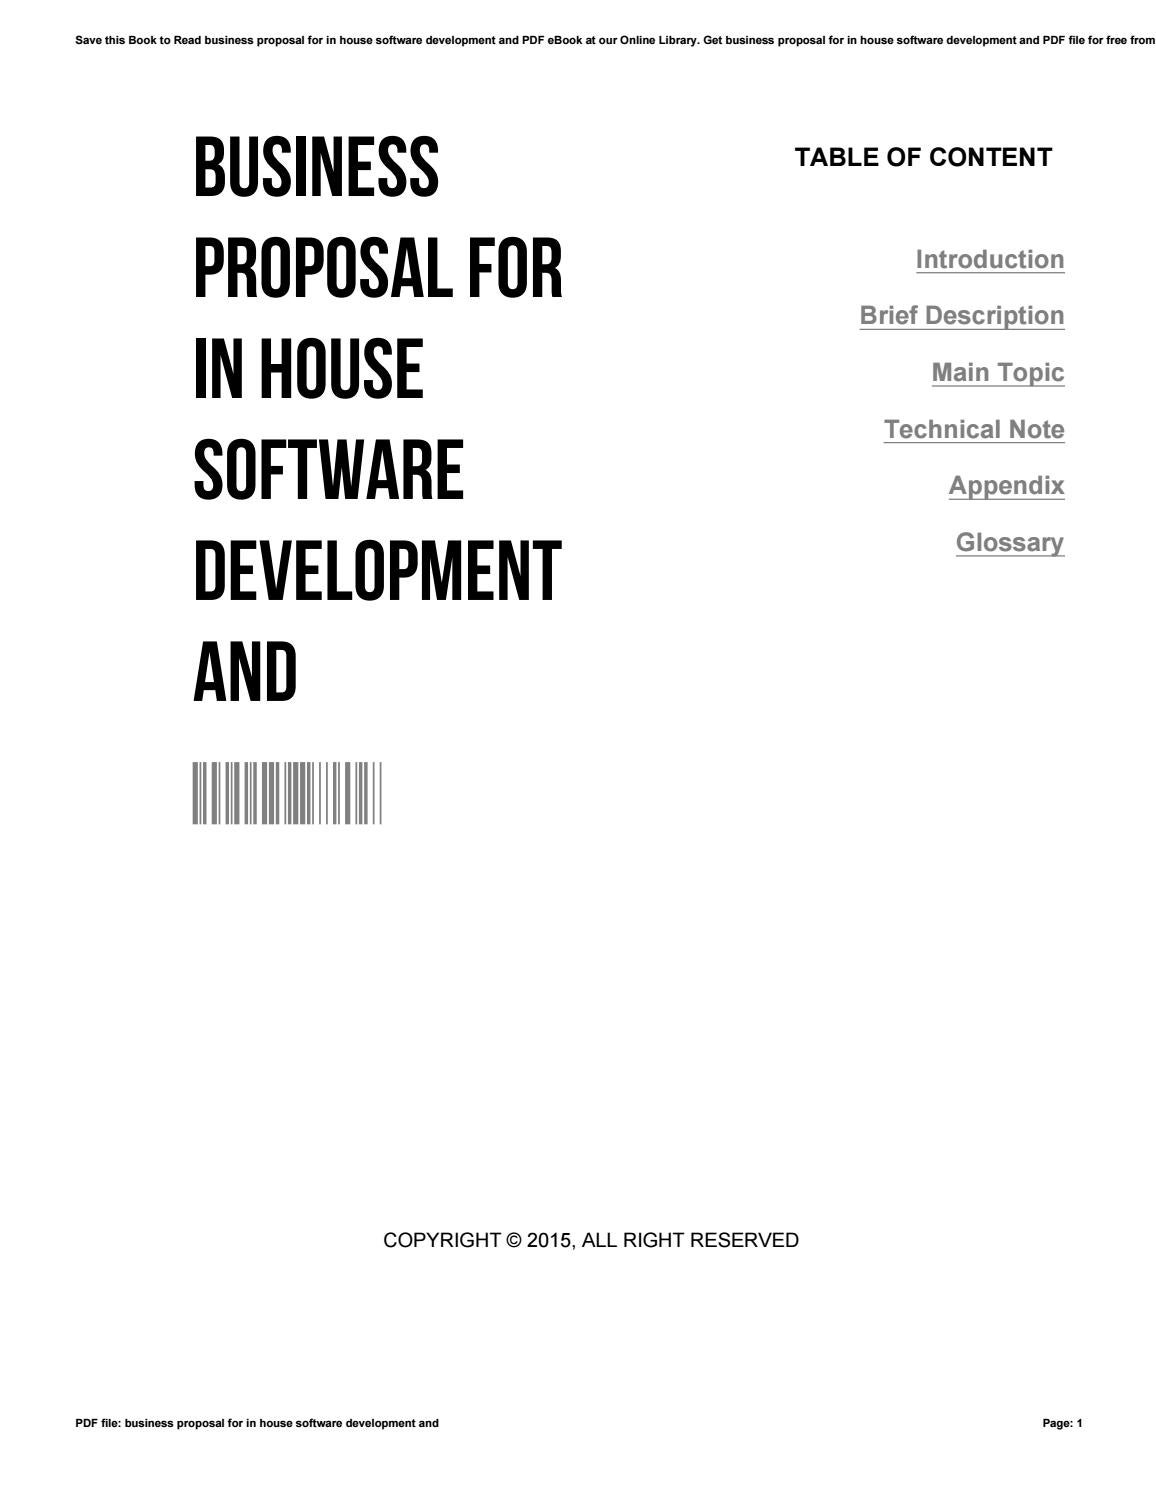 Business proposal for in house software development and by